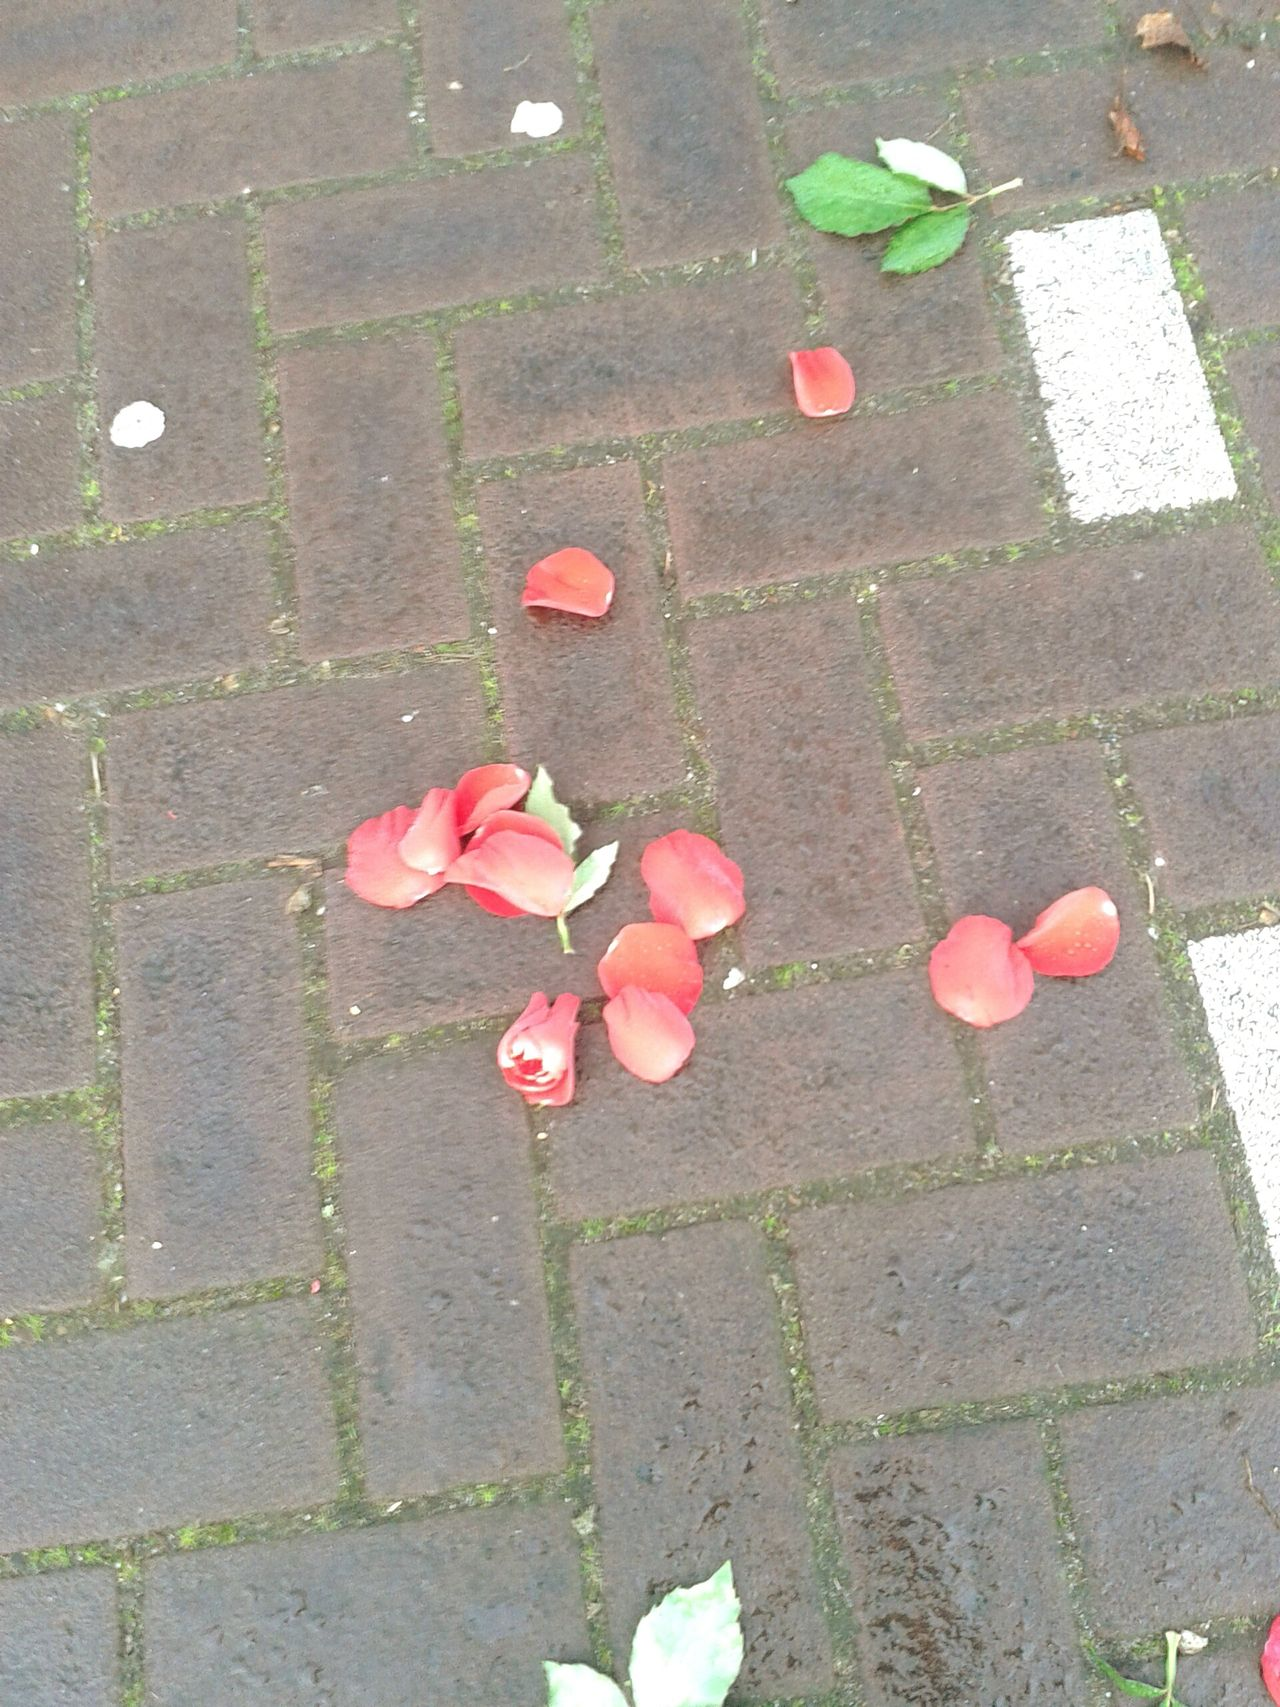 Looks like a lovestory ended after valentinesday at the parkinglot Ended Love Story Crushed Rose Crushed Dreams After Valentines Day Street Stones Petals High Angle View Multi Colored No People Pink Color Outdoors Day Close-up Rainy Day After Rain